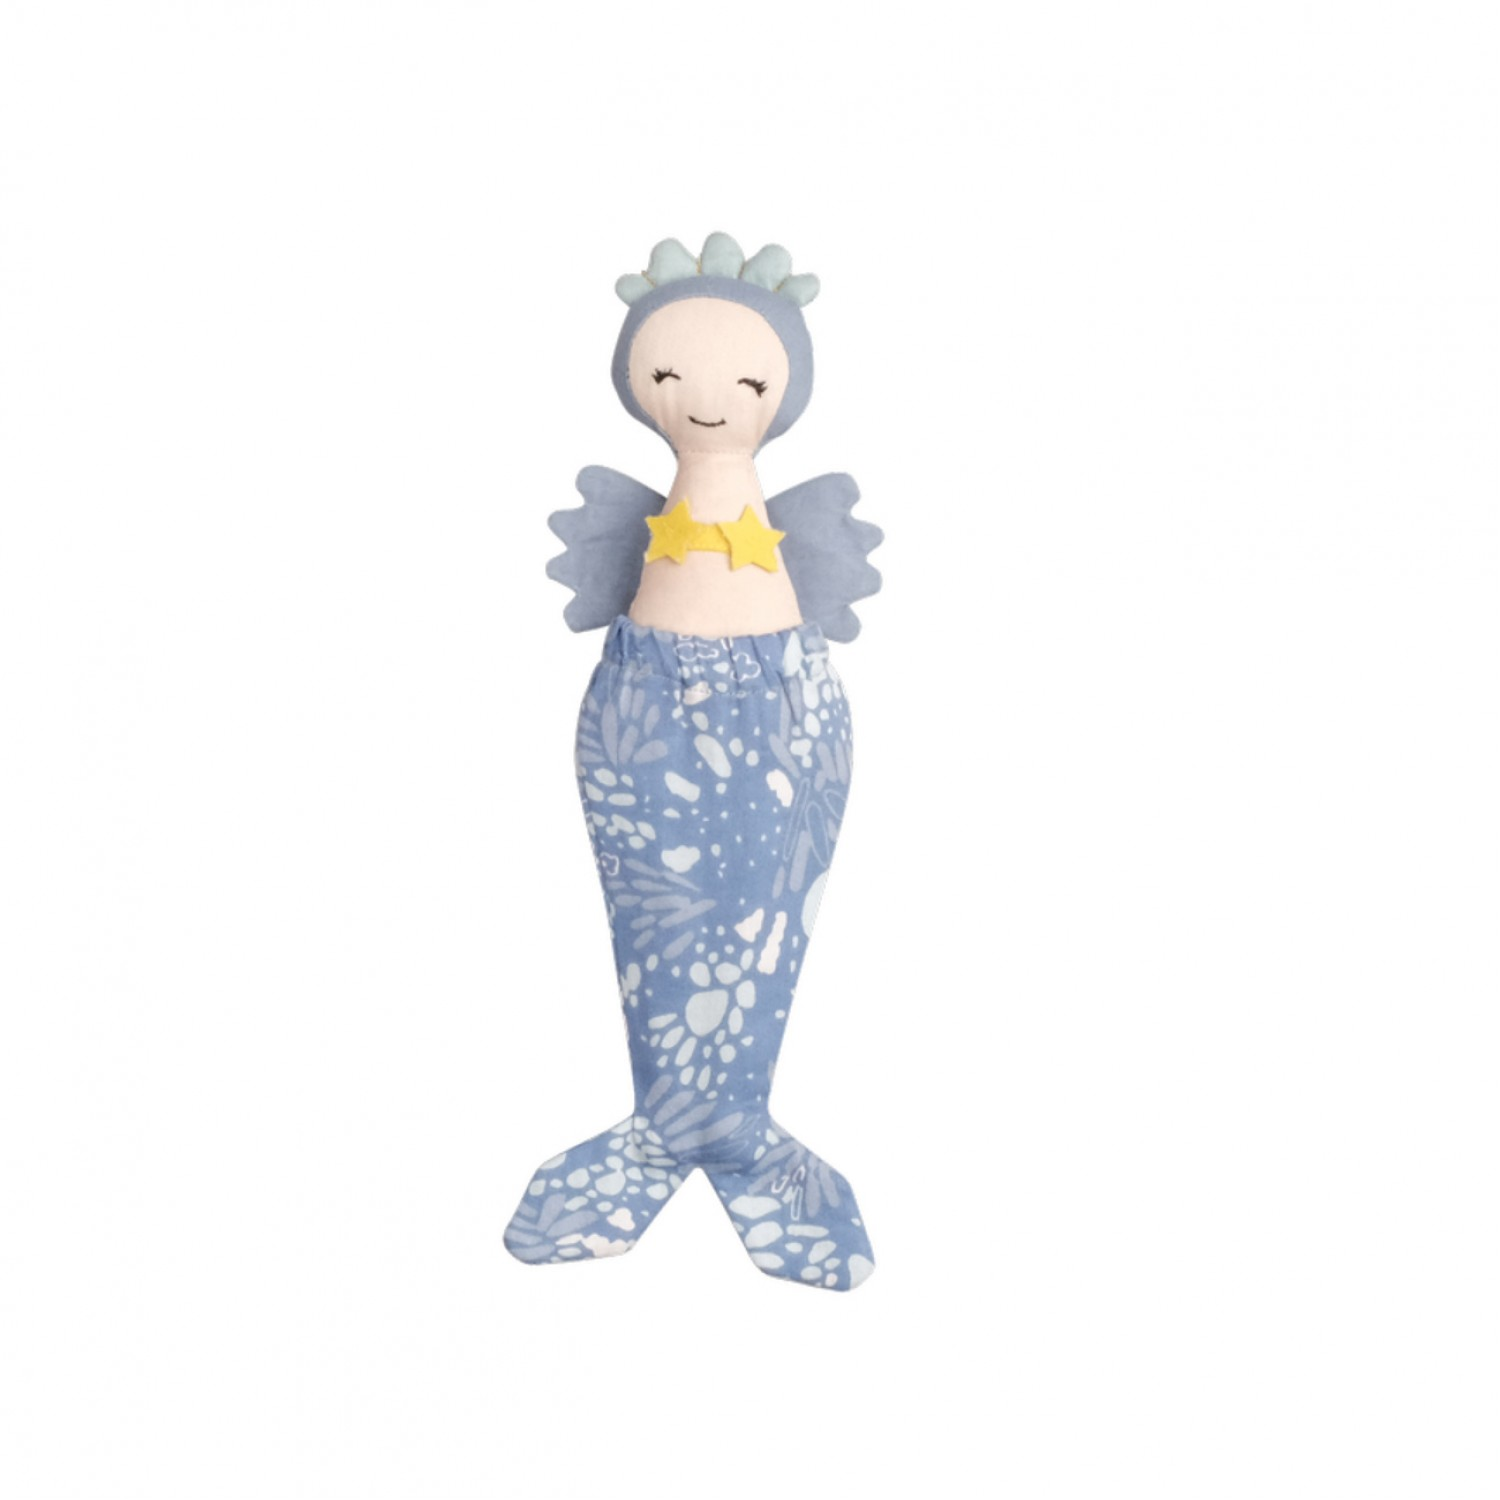 DREAM FRIEND MERMAID